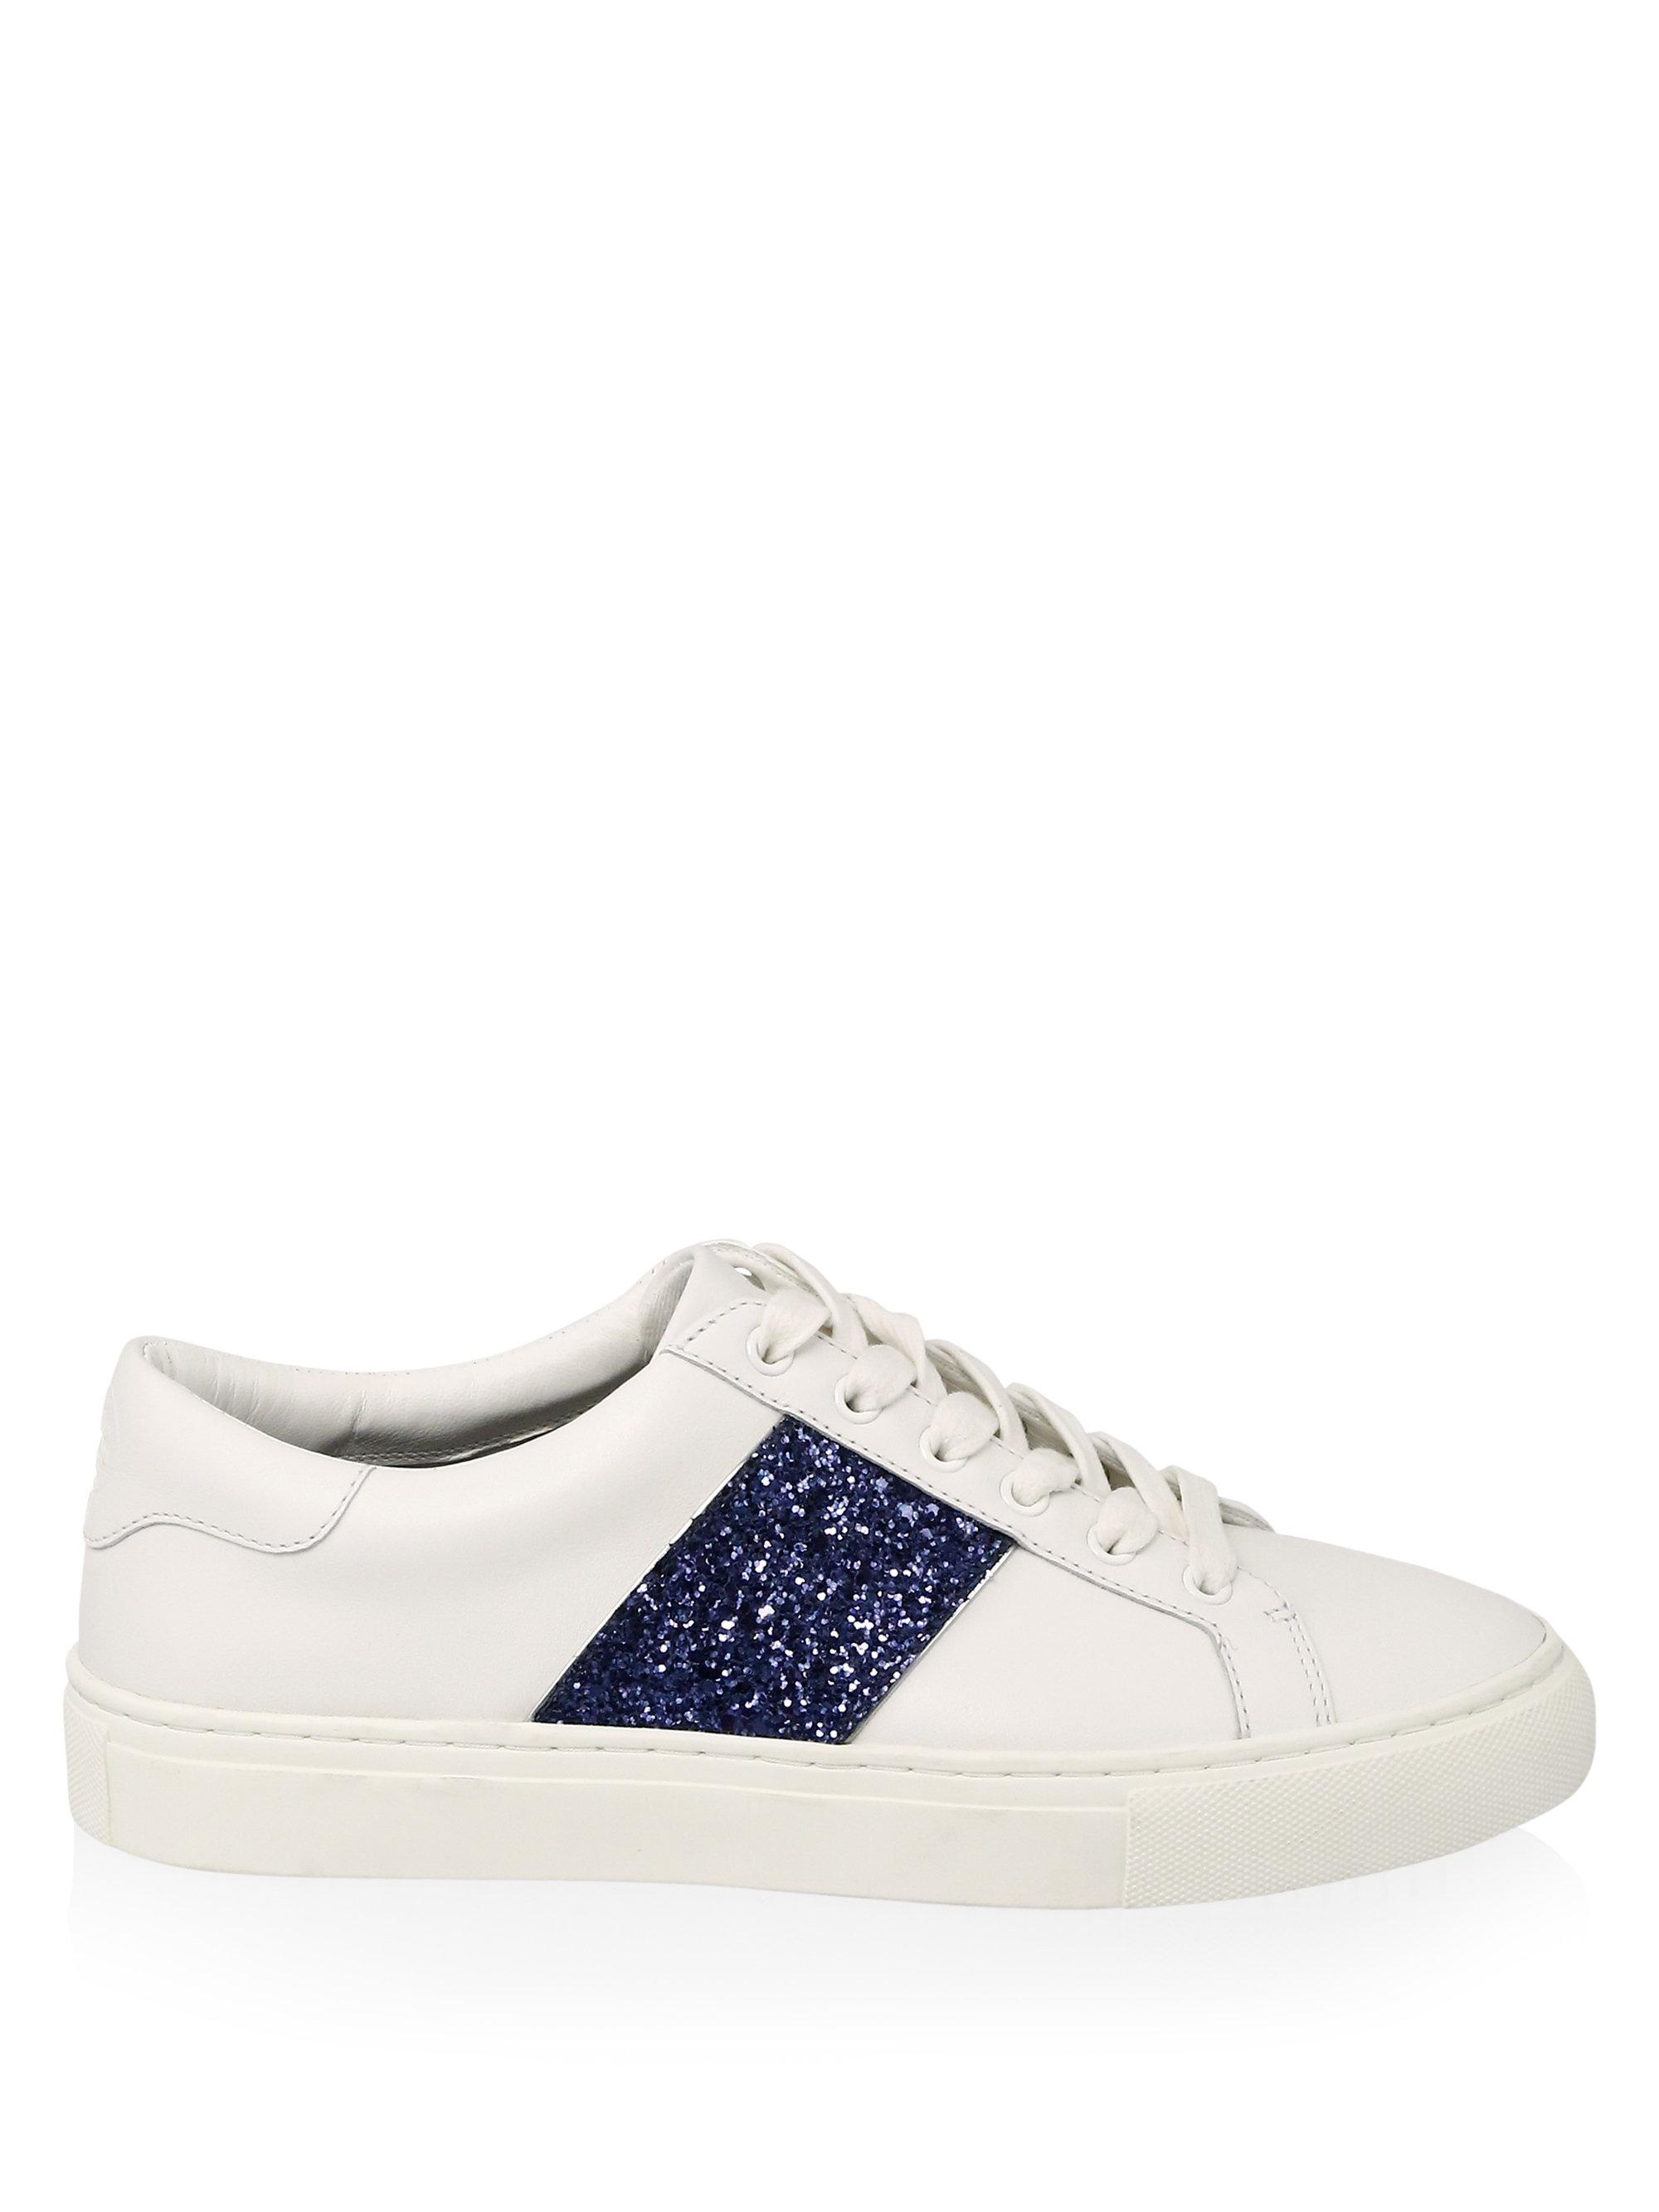 Tory Burch Carter Glitter Lace Up Leather Sneakers In